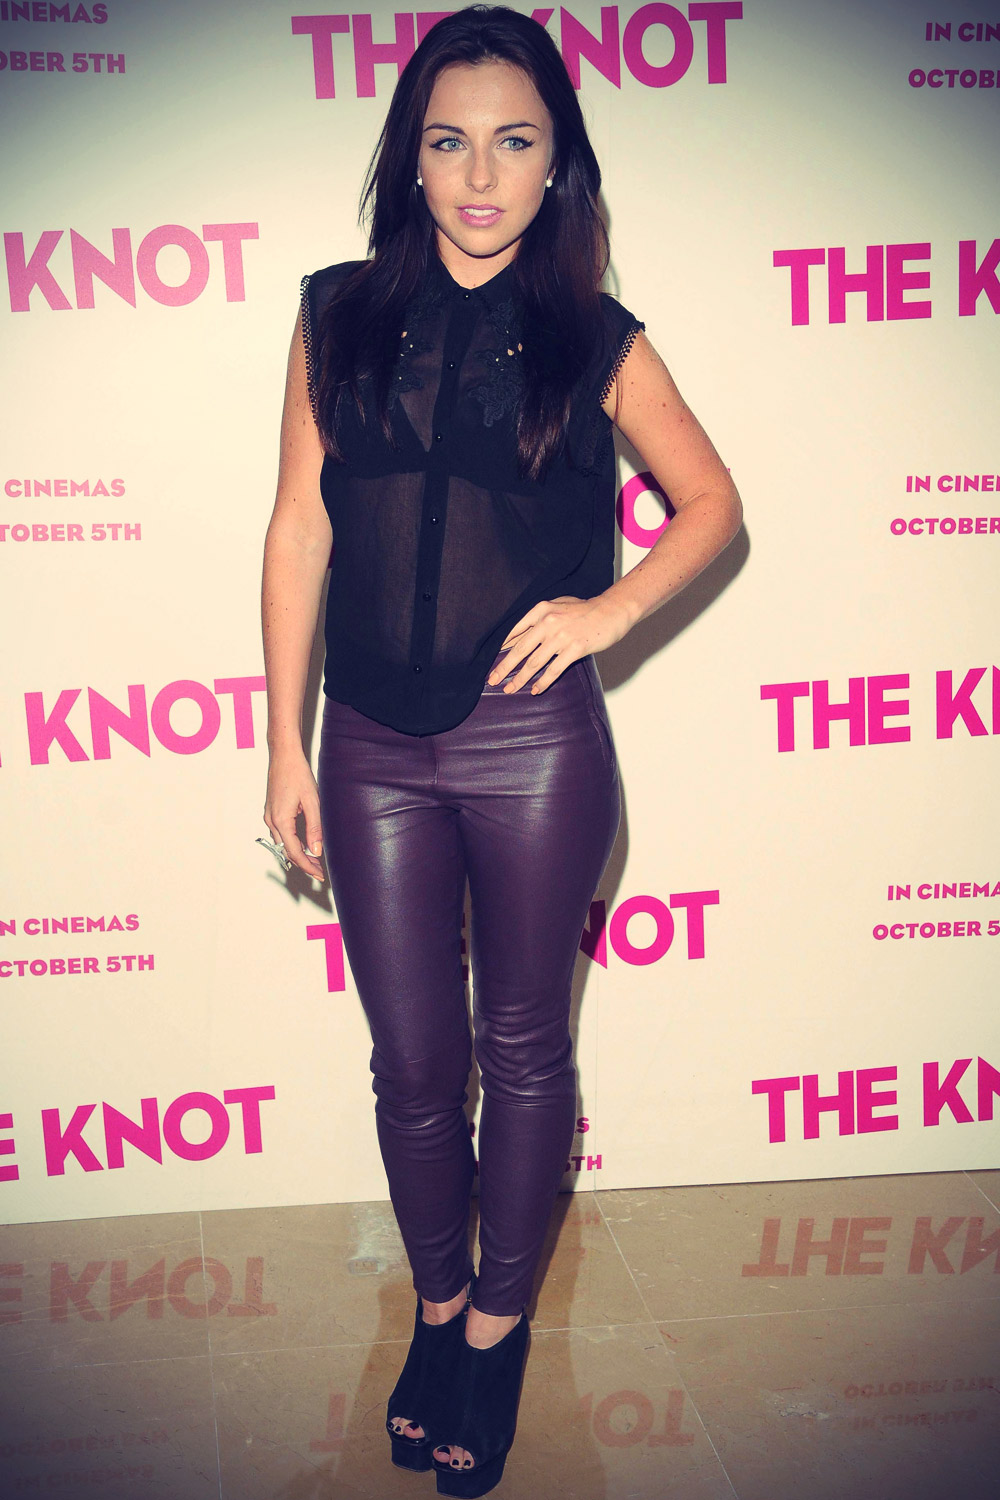 Louisa Lytton at The Knot Gala Screening